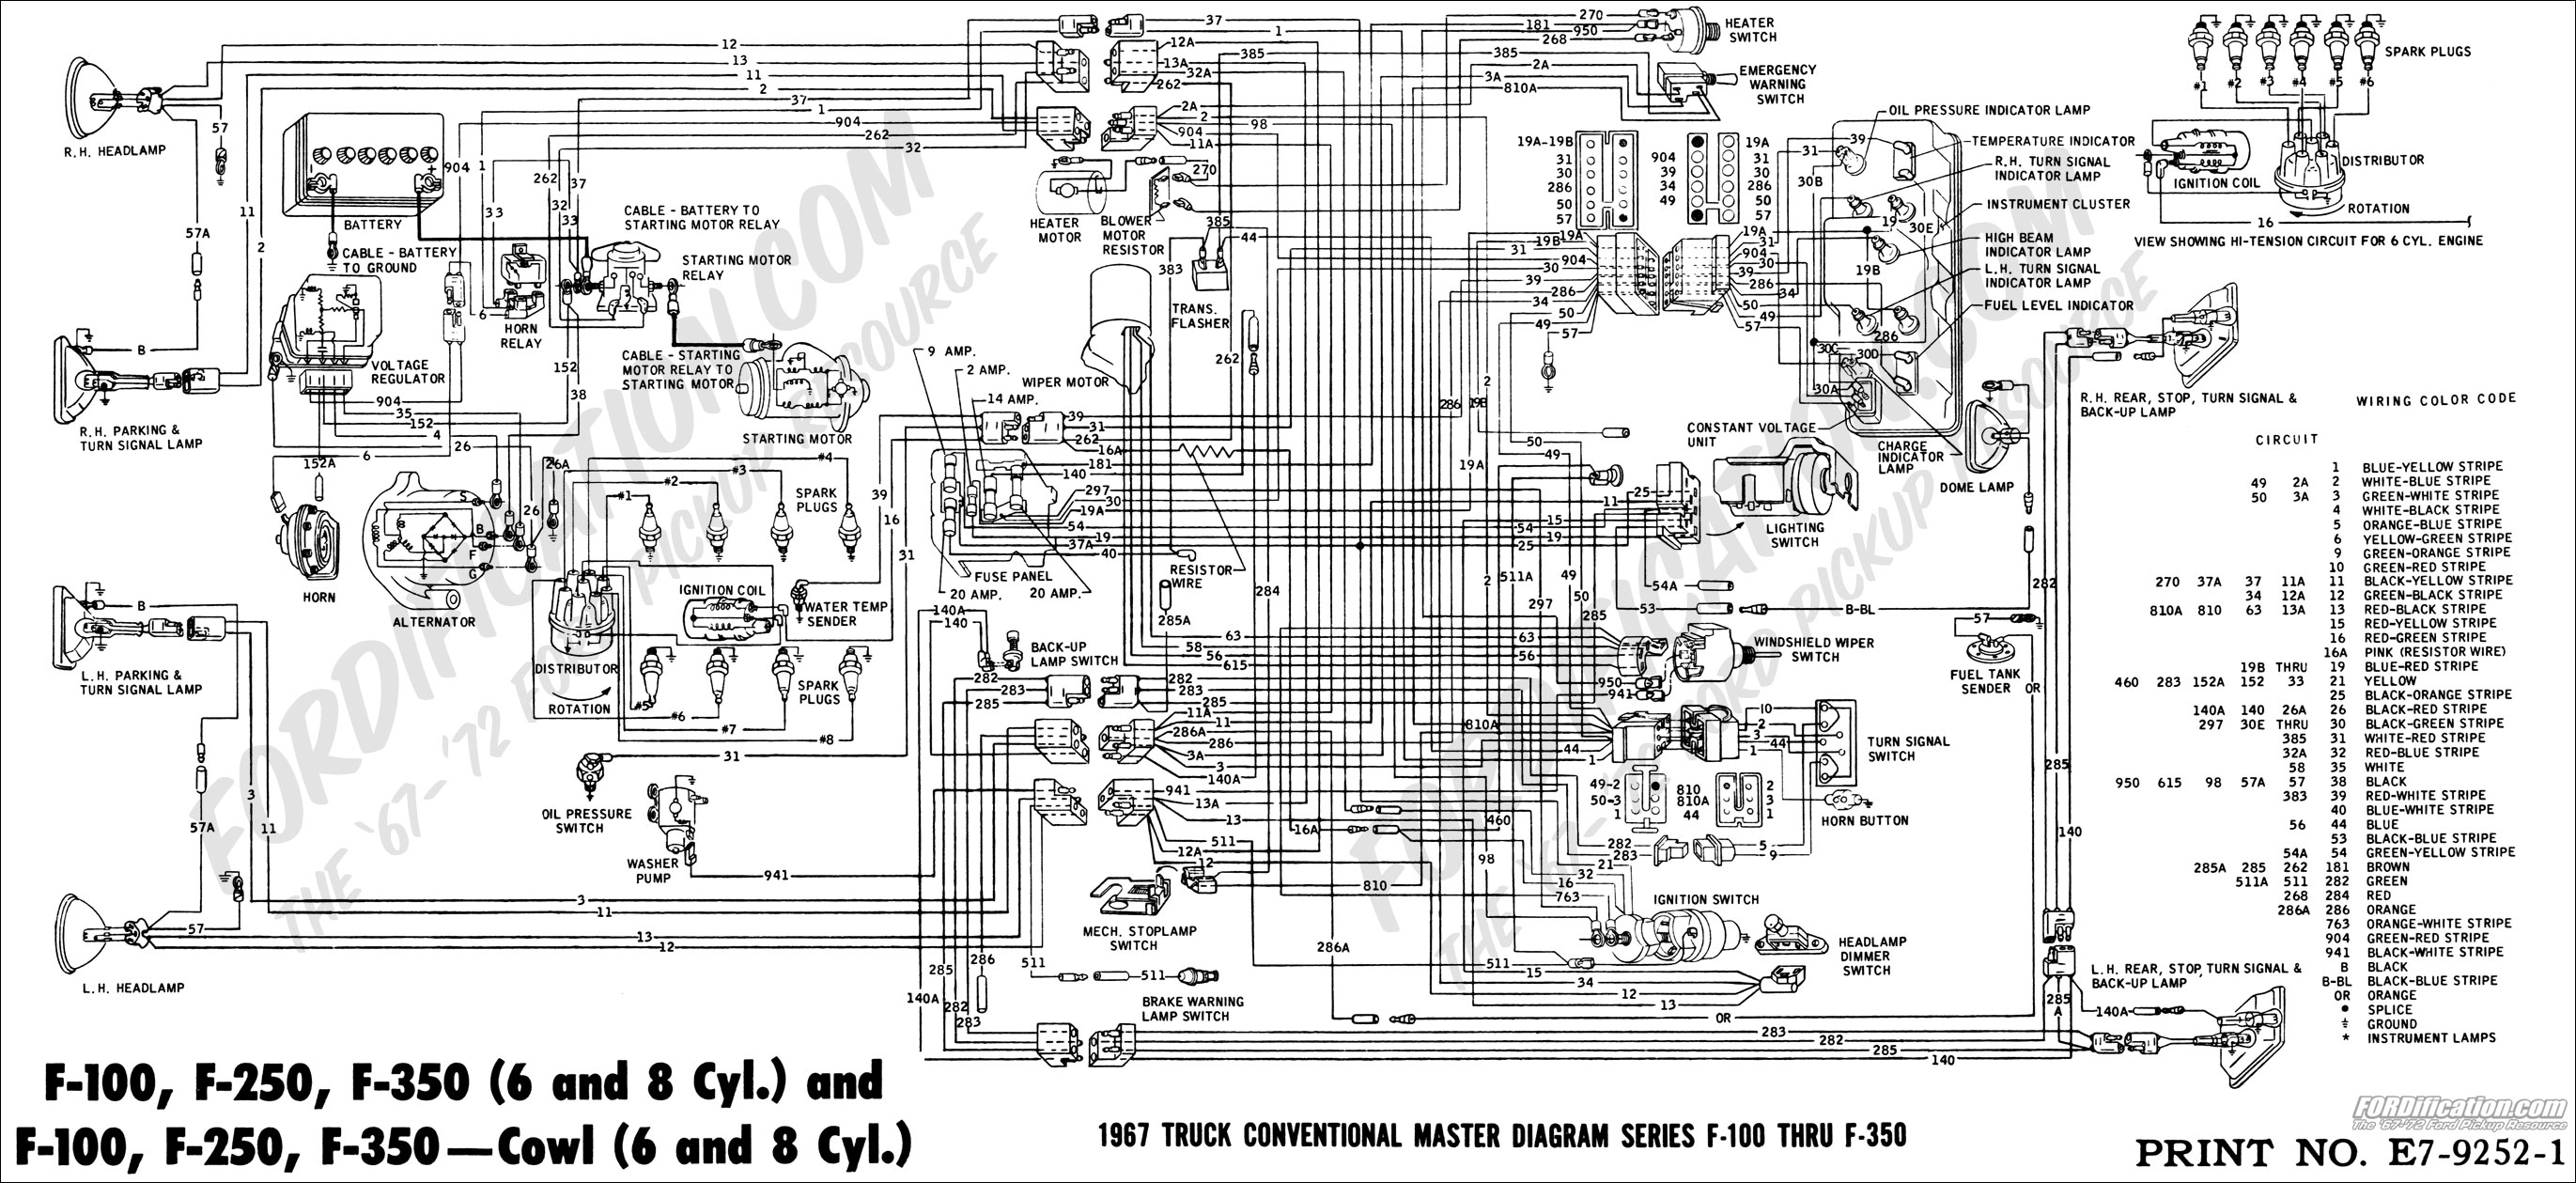 2010 ford f150 factory stereo wiring diagram 1980 kz1000 truck technical drawings and schematics section h